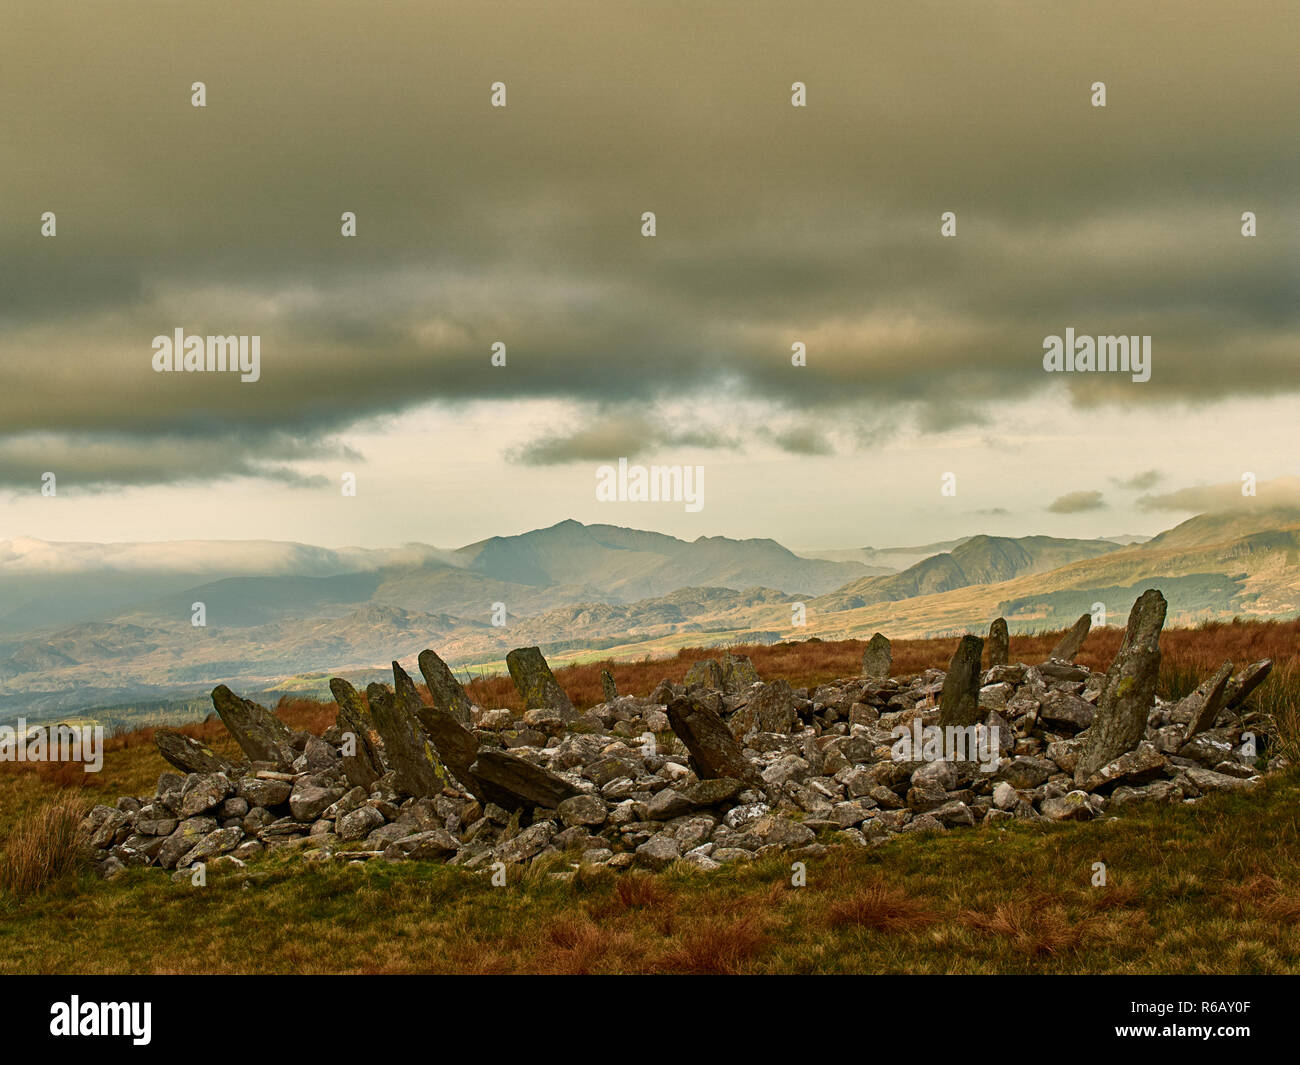 Bryn Cader Faner Cairn Circle. A combination of burial mound with a stone circle of slabs. Set in a scenic landscape with mount Snowdon to the north. Stock Photo